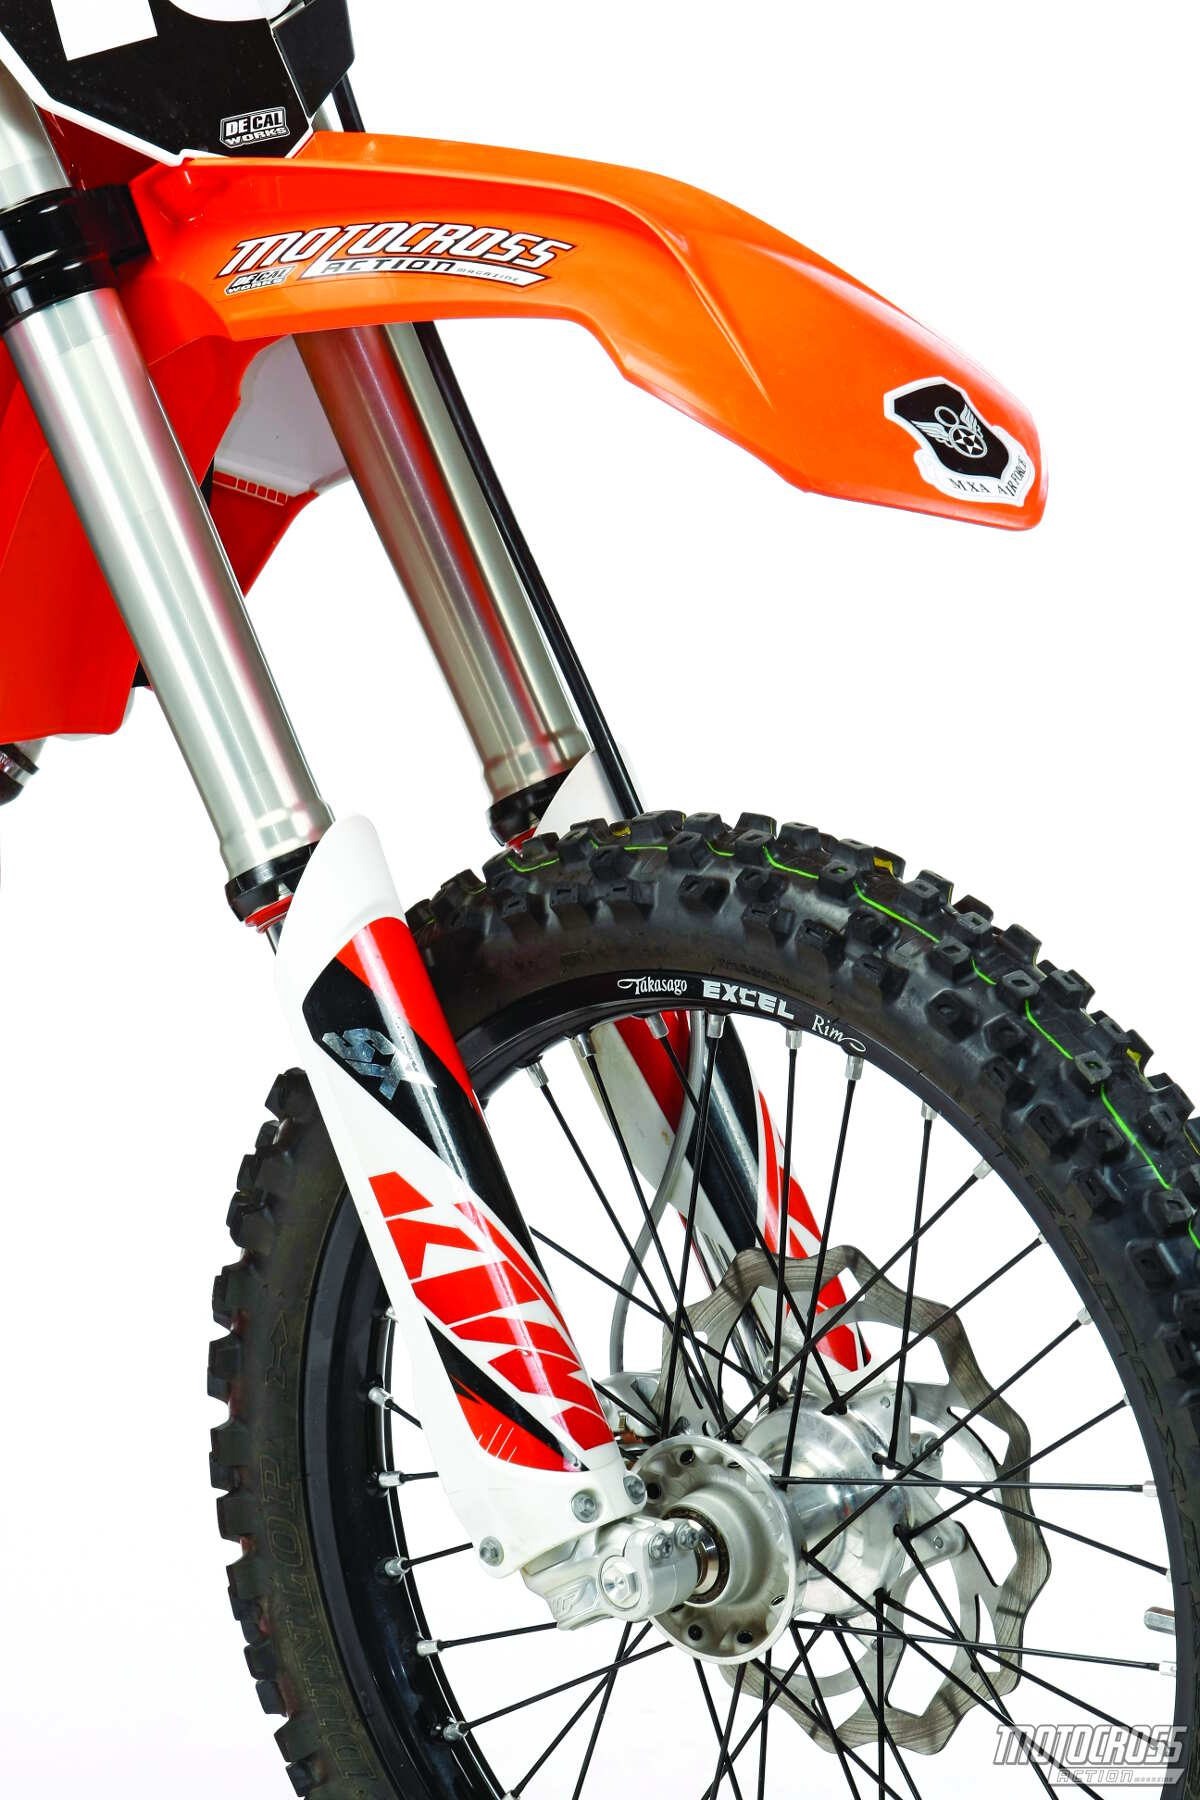 2015 Test Ride Ktm 250sxf on body cavitation